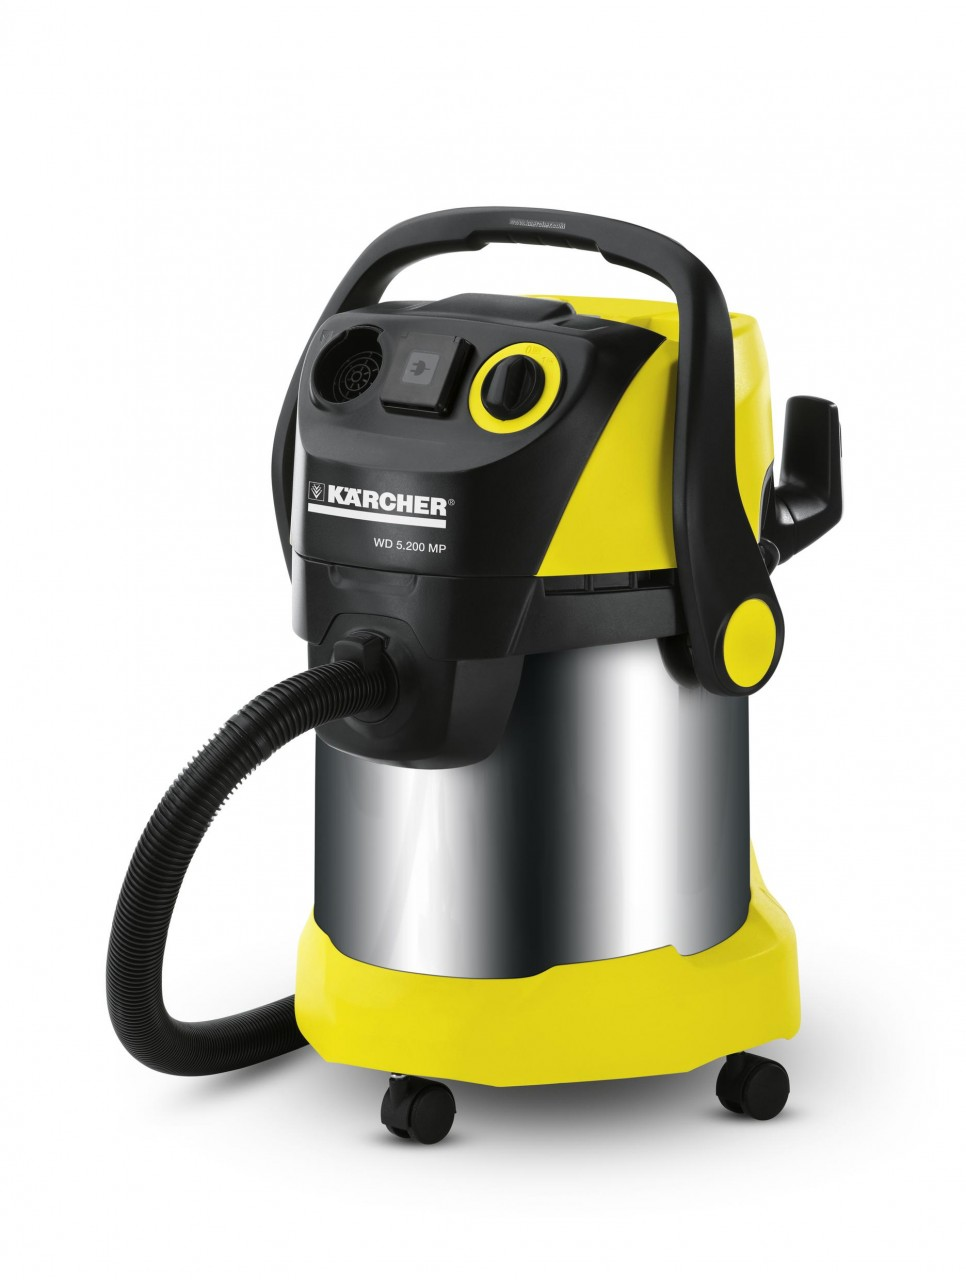 Karcher wd m wet and dry vacuum cleaner in pakistan - Karcher wd5 premium ...